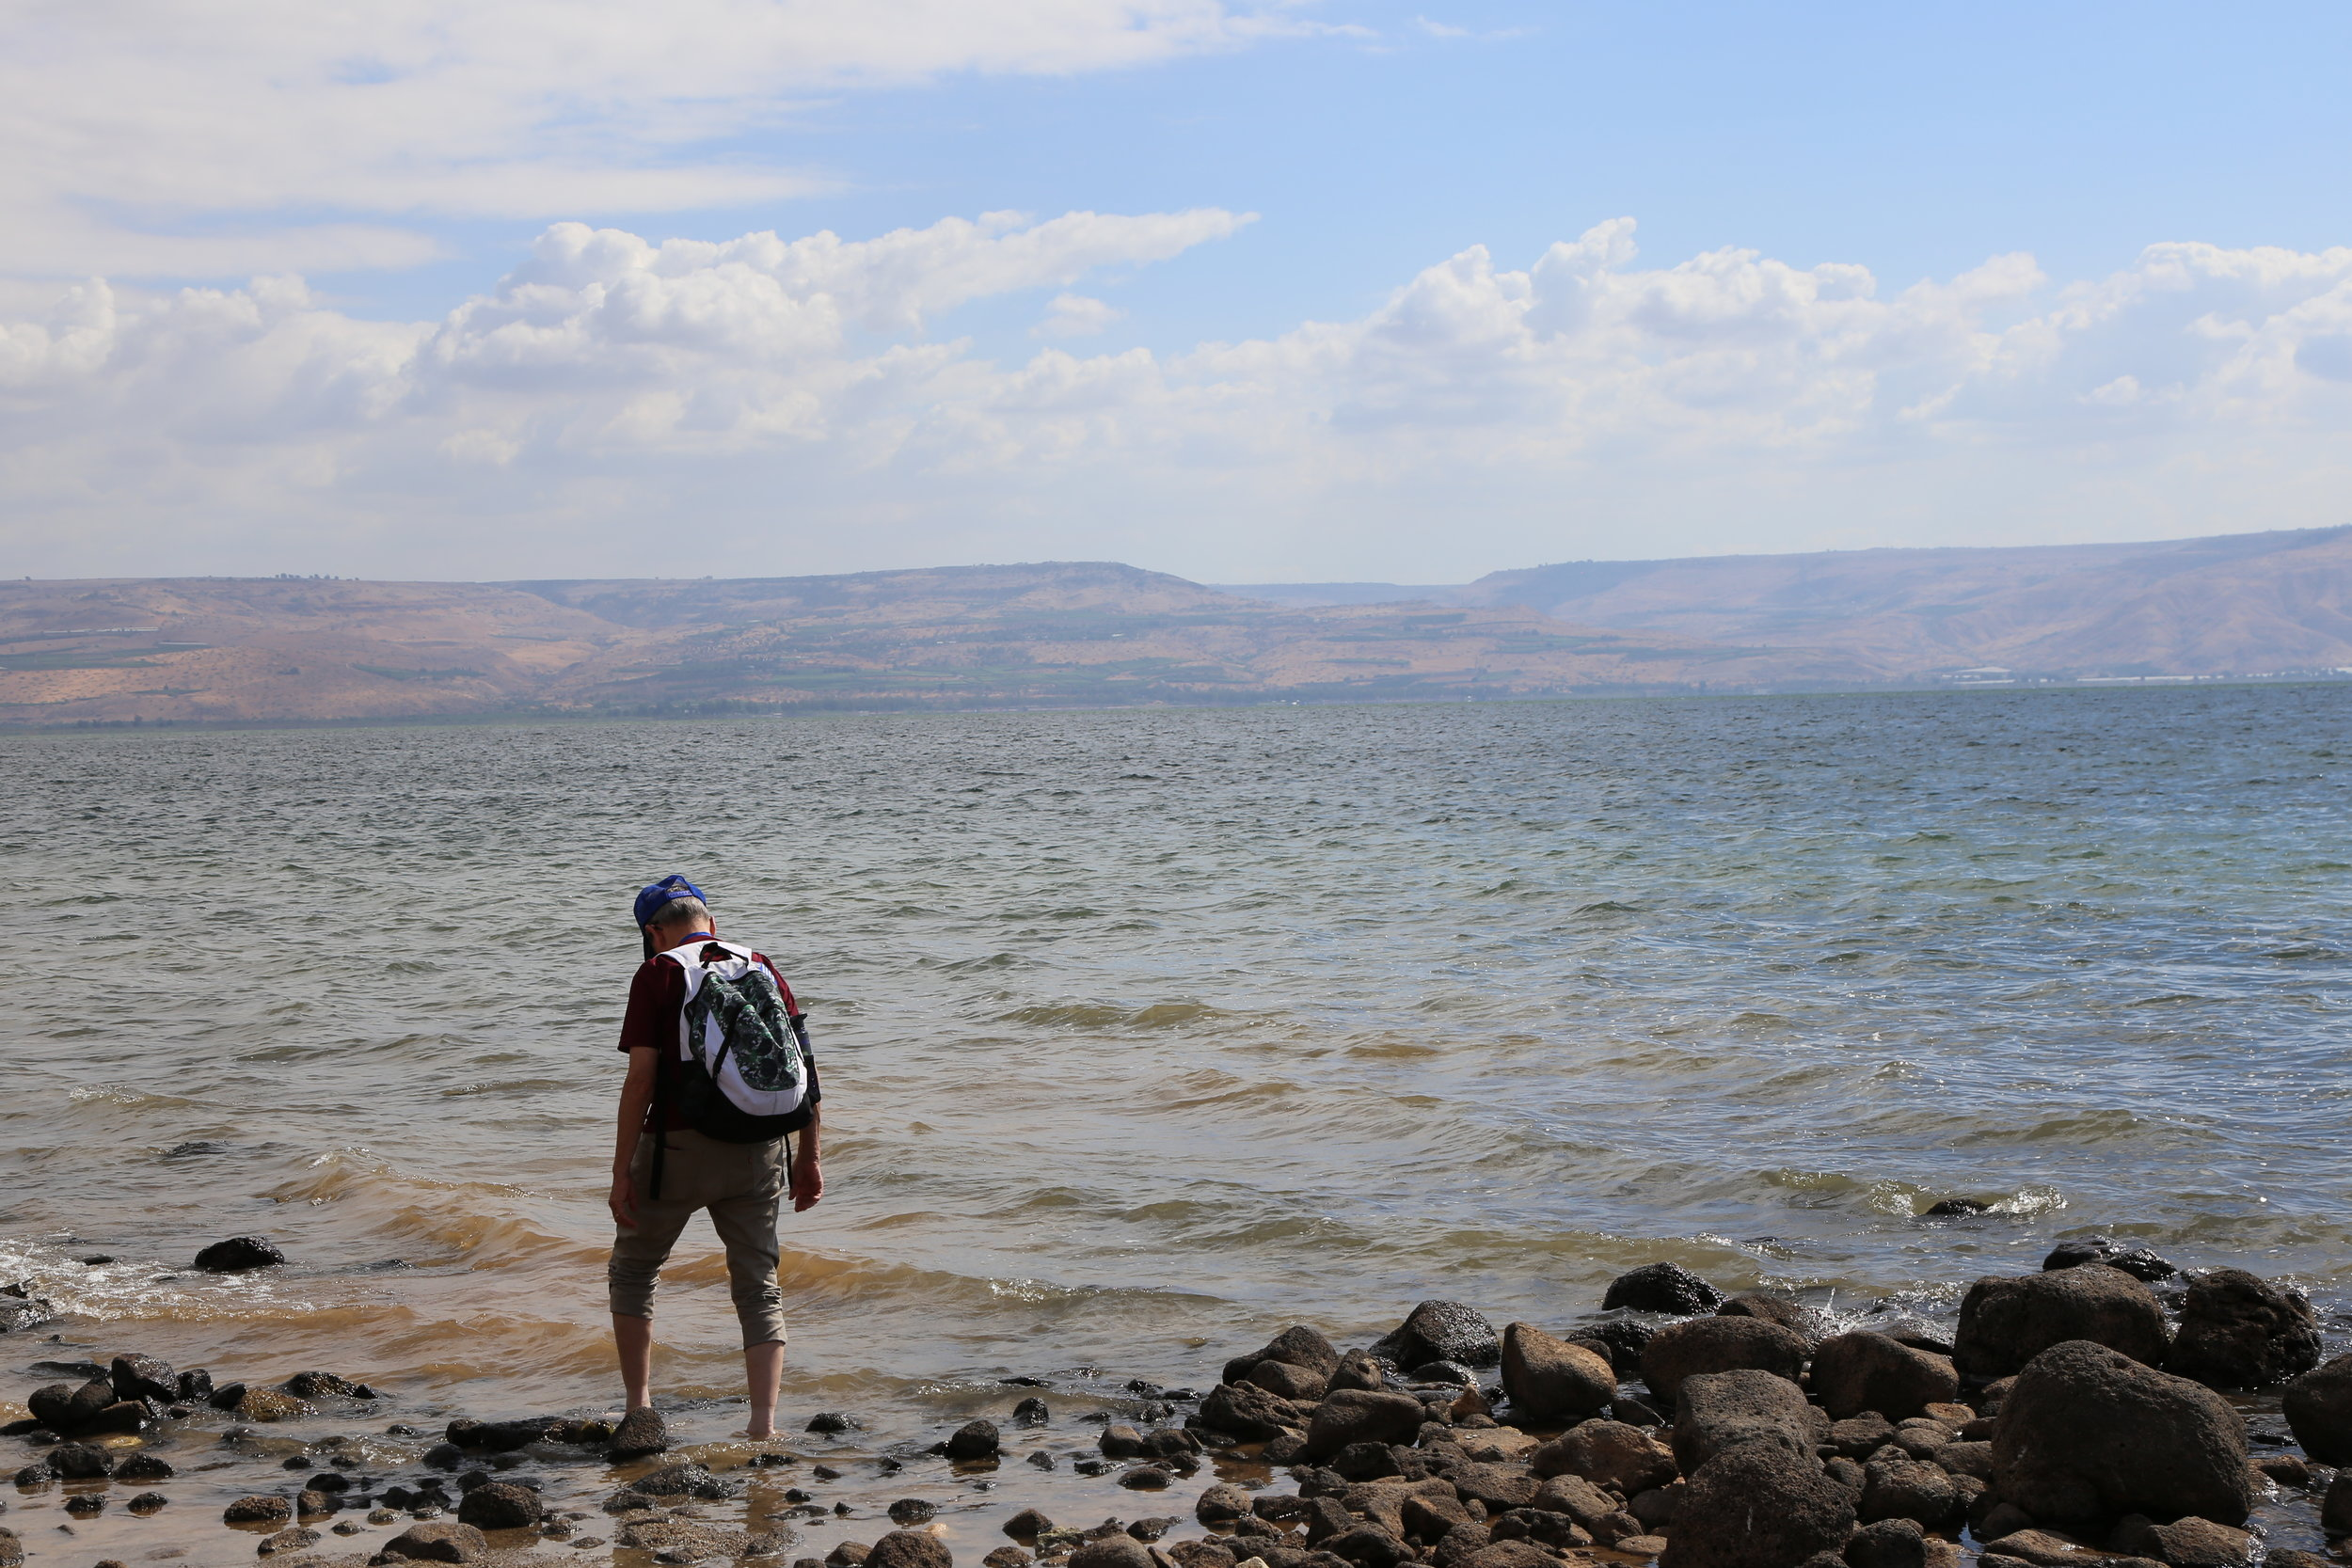 Case in point, when else can you dip your feet into the Sea of Galilee?